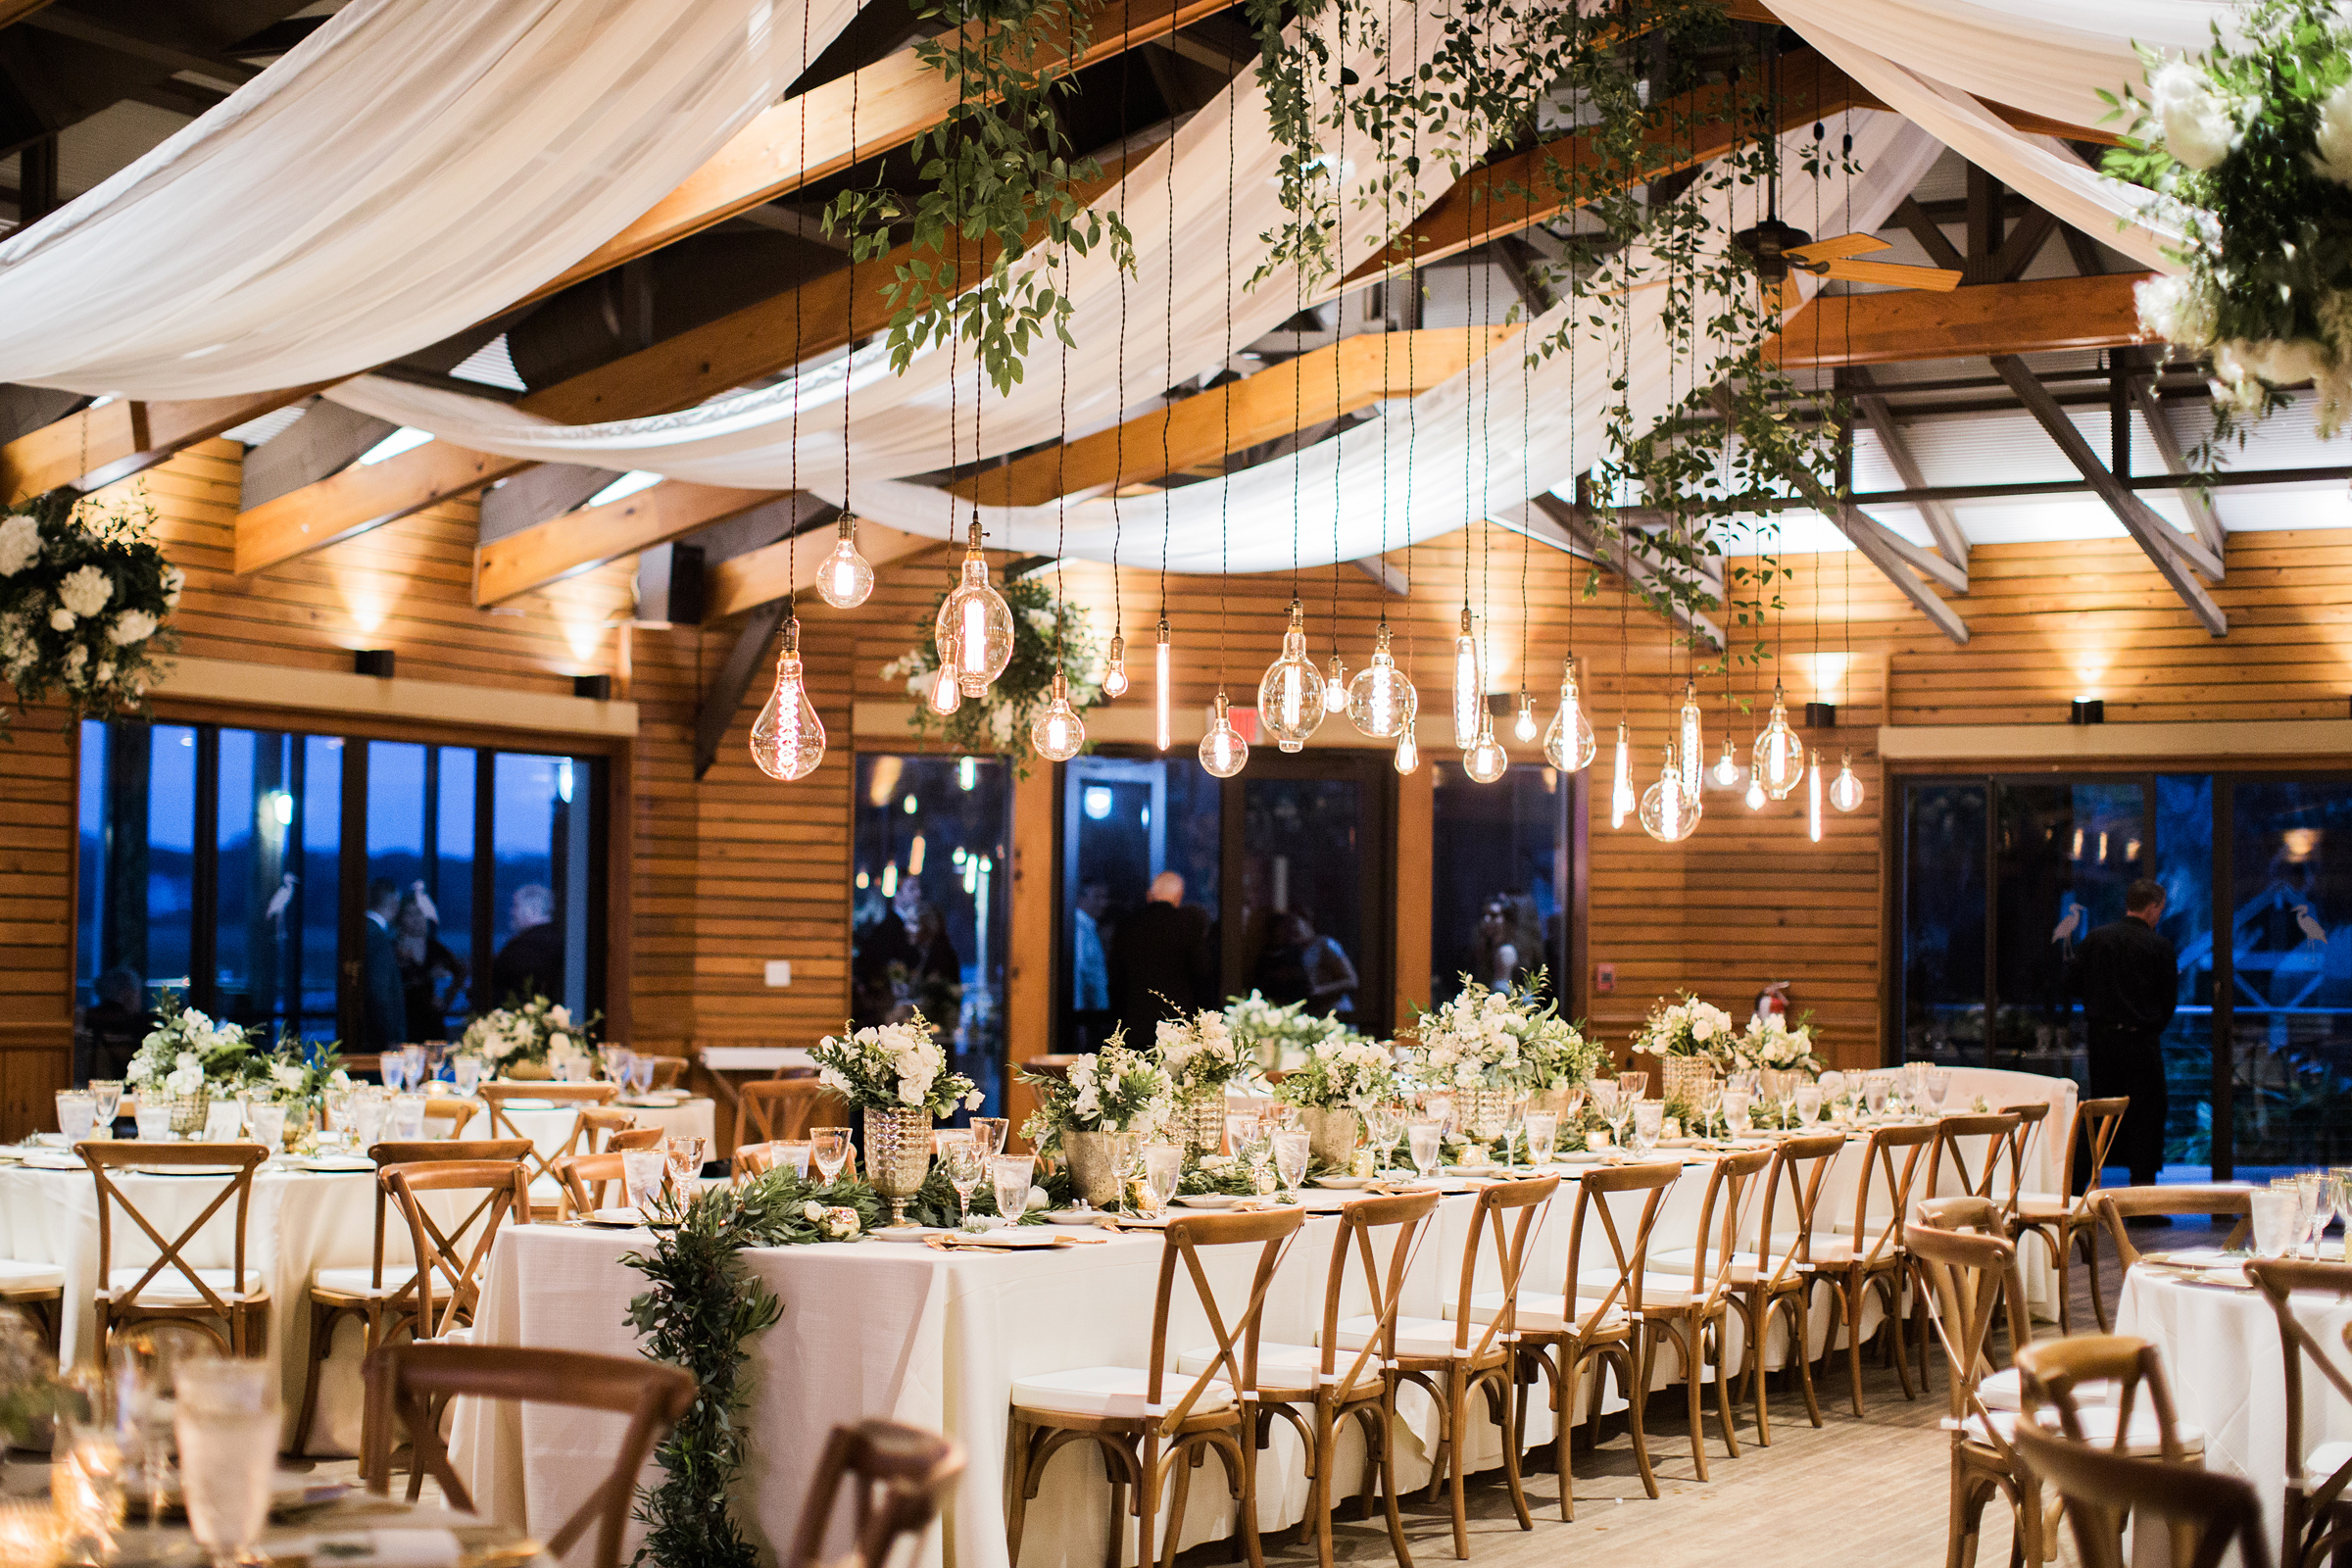 Reception Room with Draping and Greenery